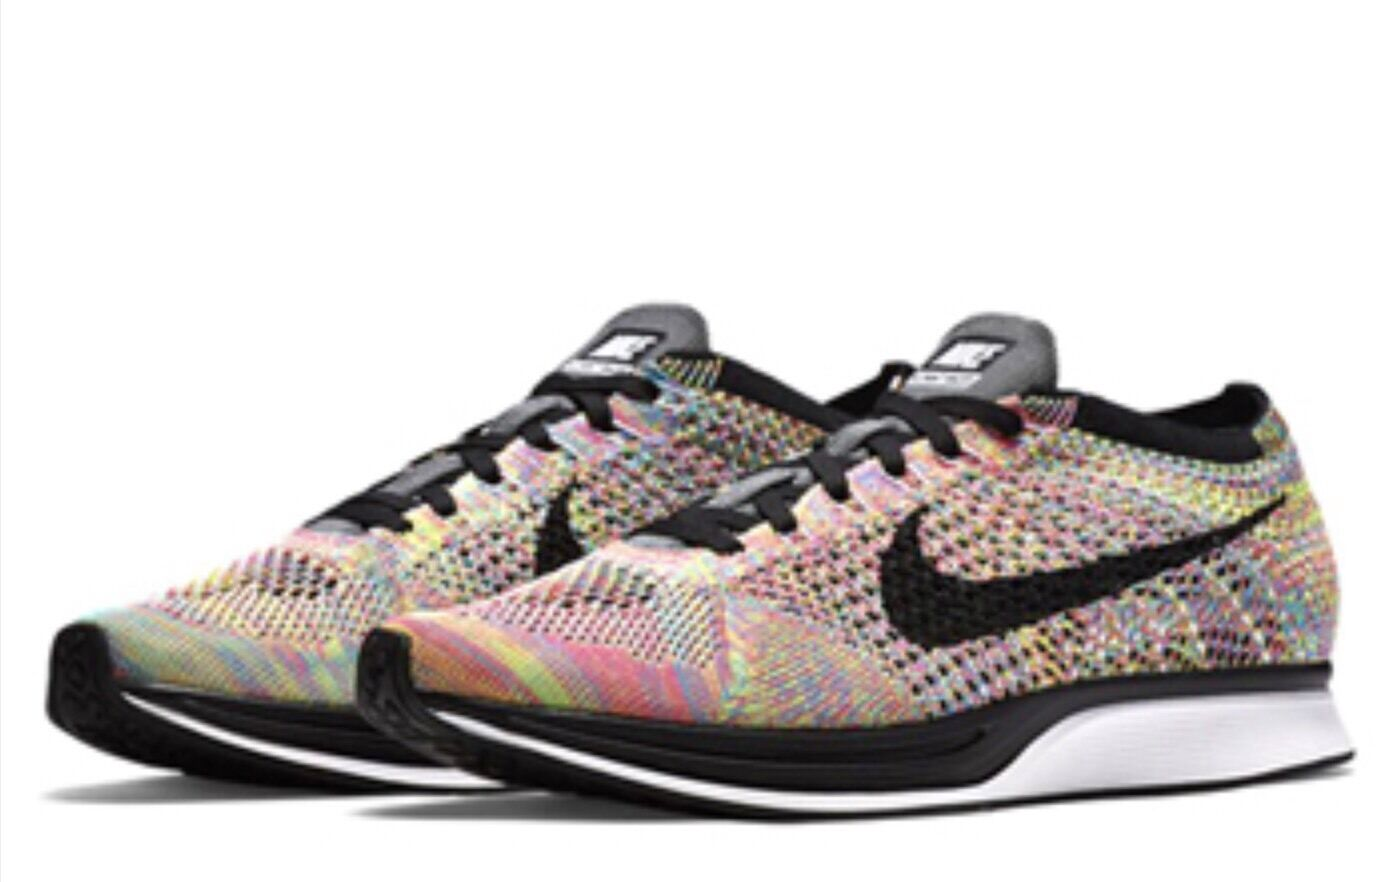 DS MENS NIKE FLYKNIT RACER  526628 004 MULTICOLOR RAINBOW Price reduction  Comfortable and good-looking